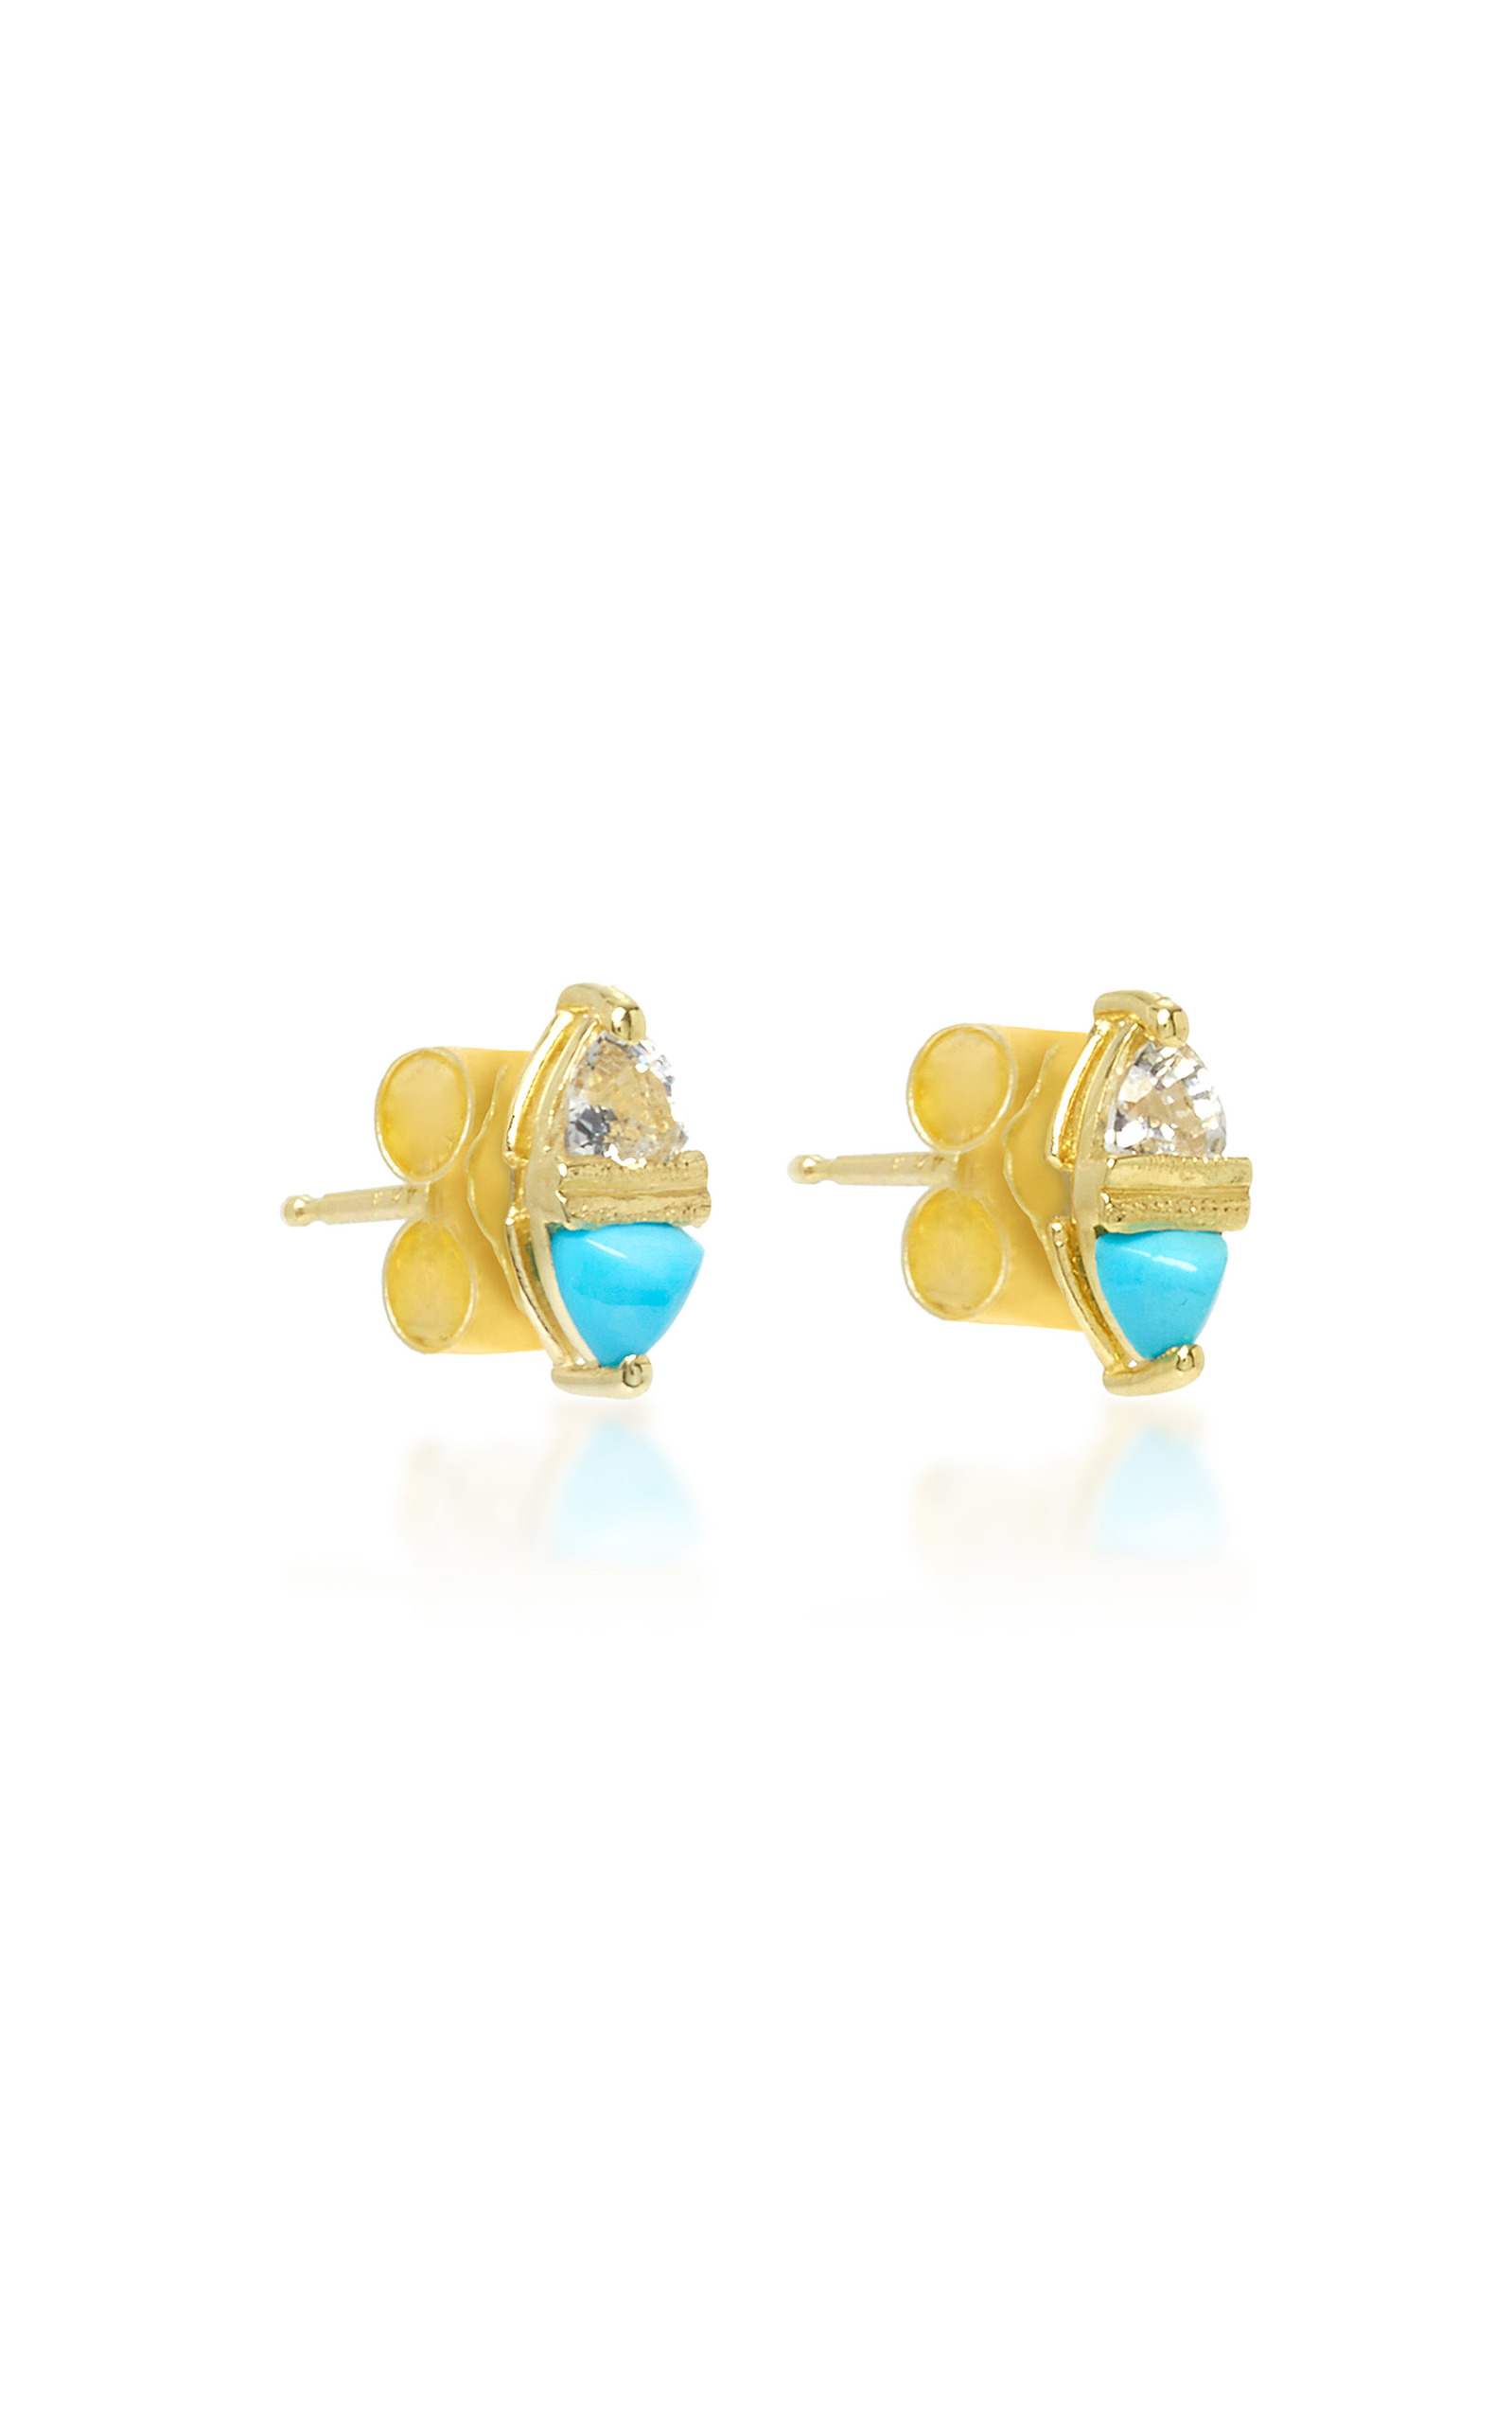 women earrings elegant jewellery stud designer fashion turquoise big addic diamond